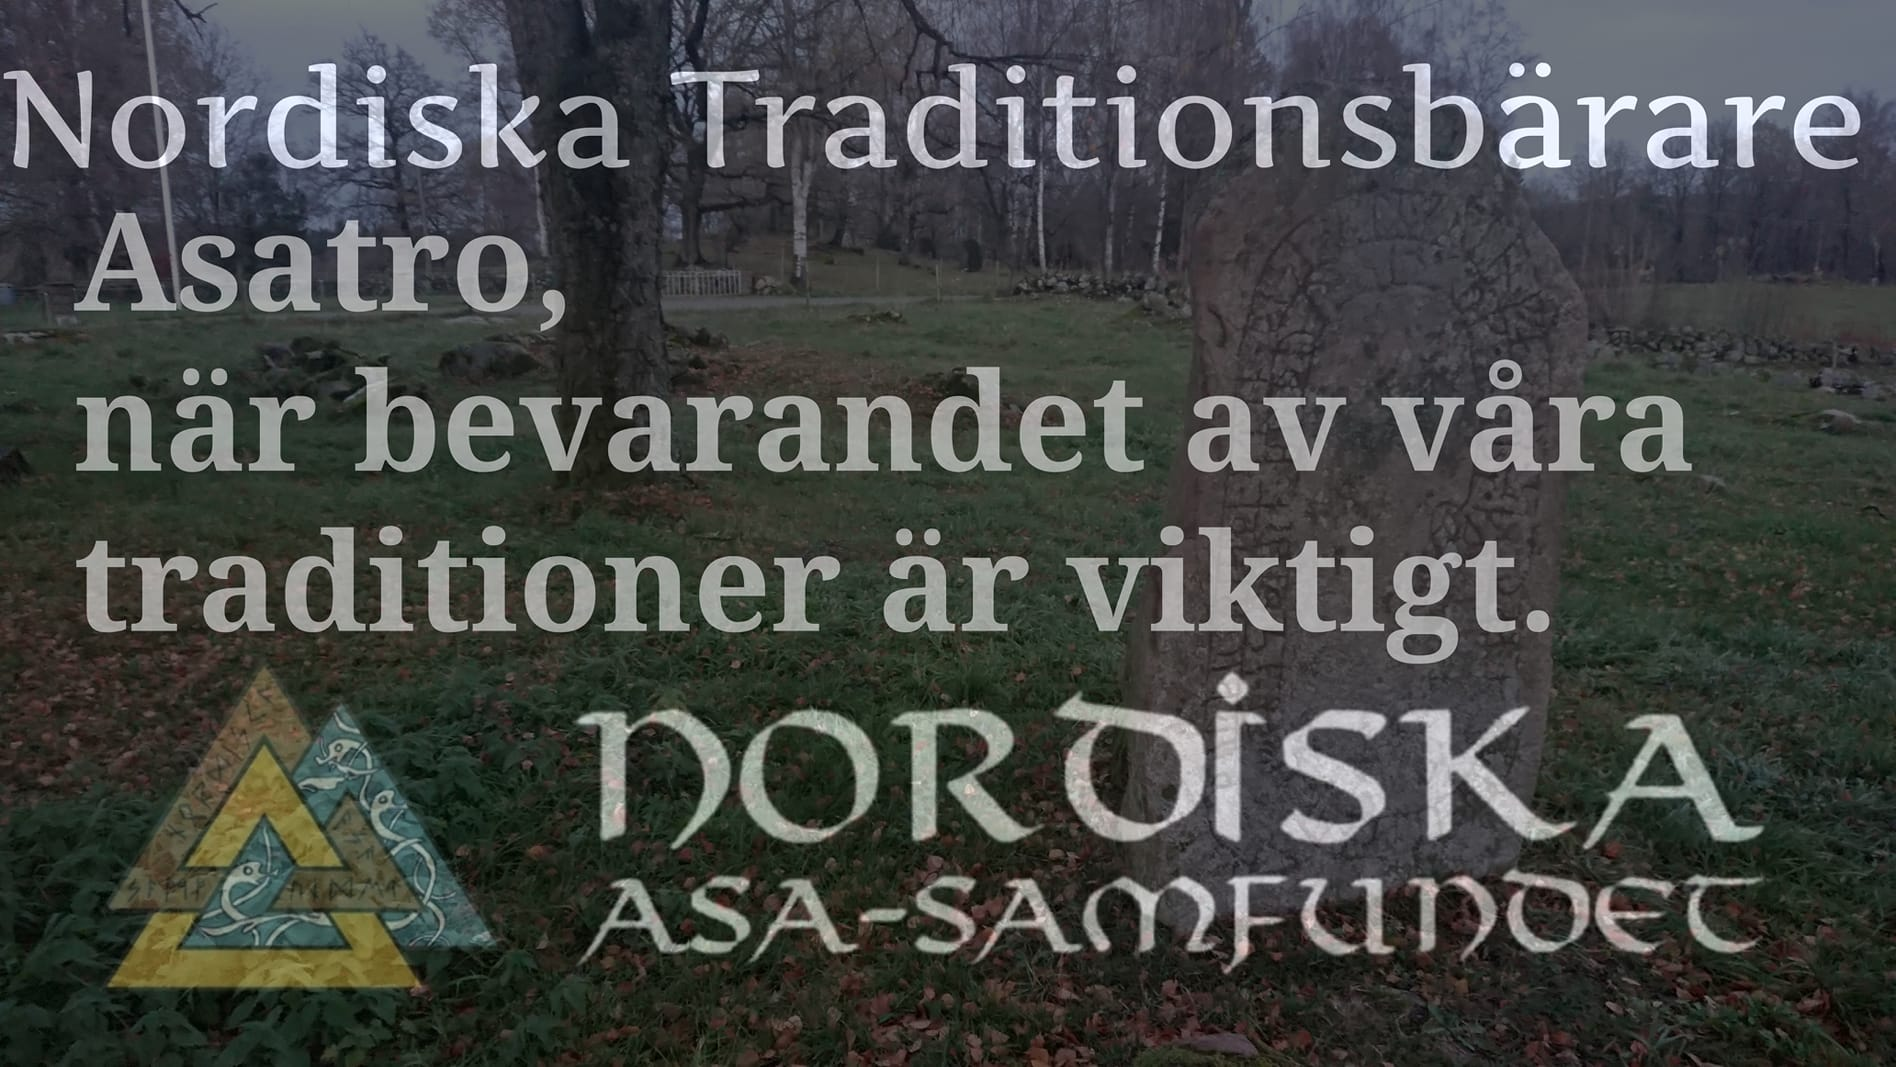 Nordiska-Traditionsbarare03